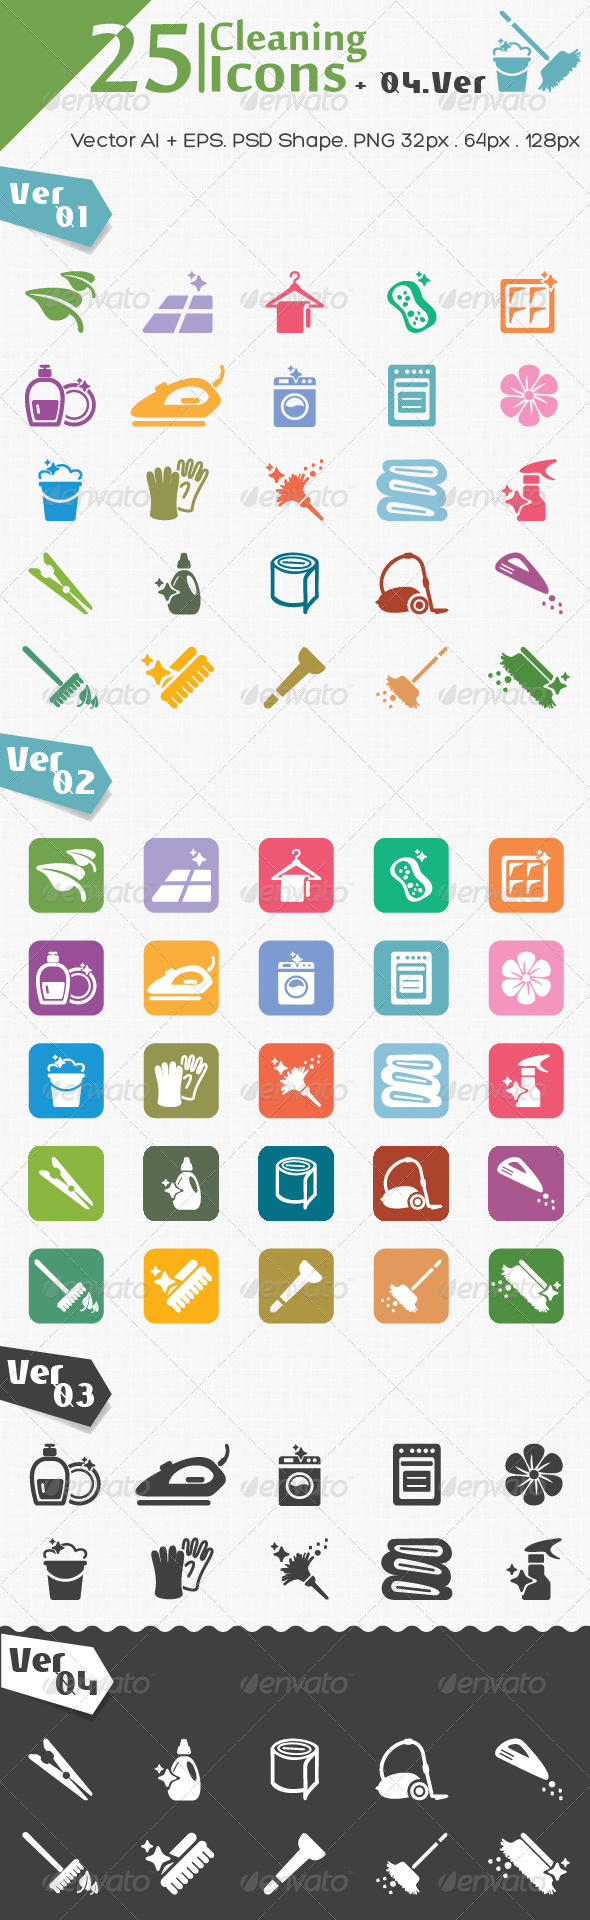 GraphicRiver Cleaning Icons 5739115